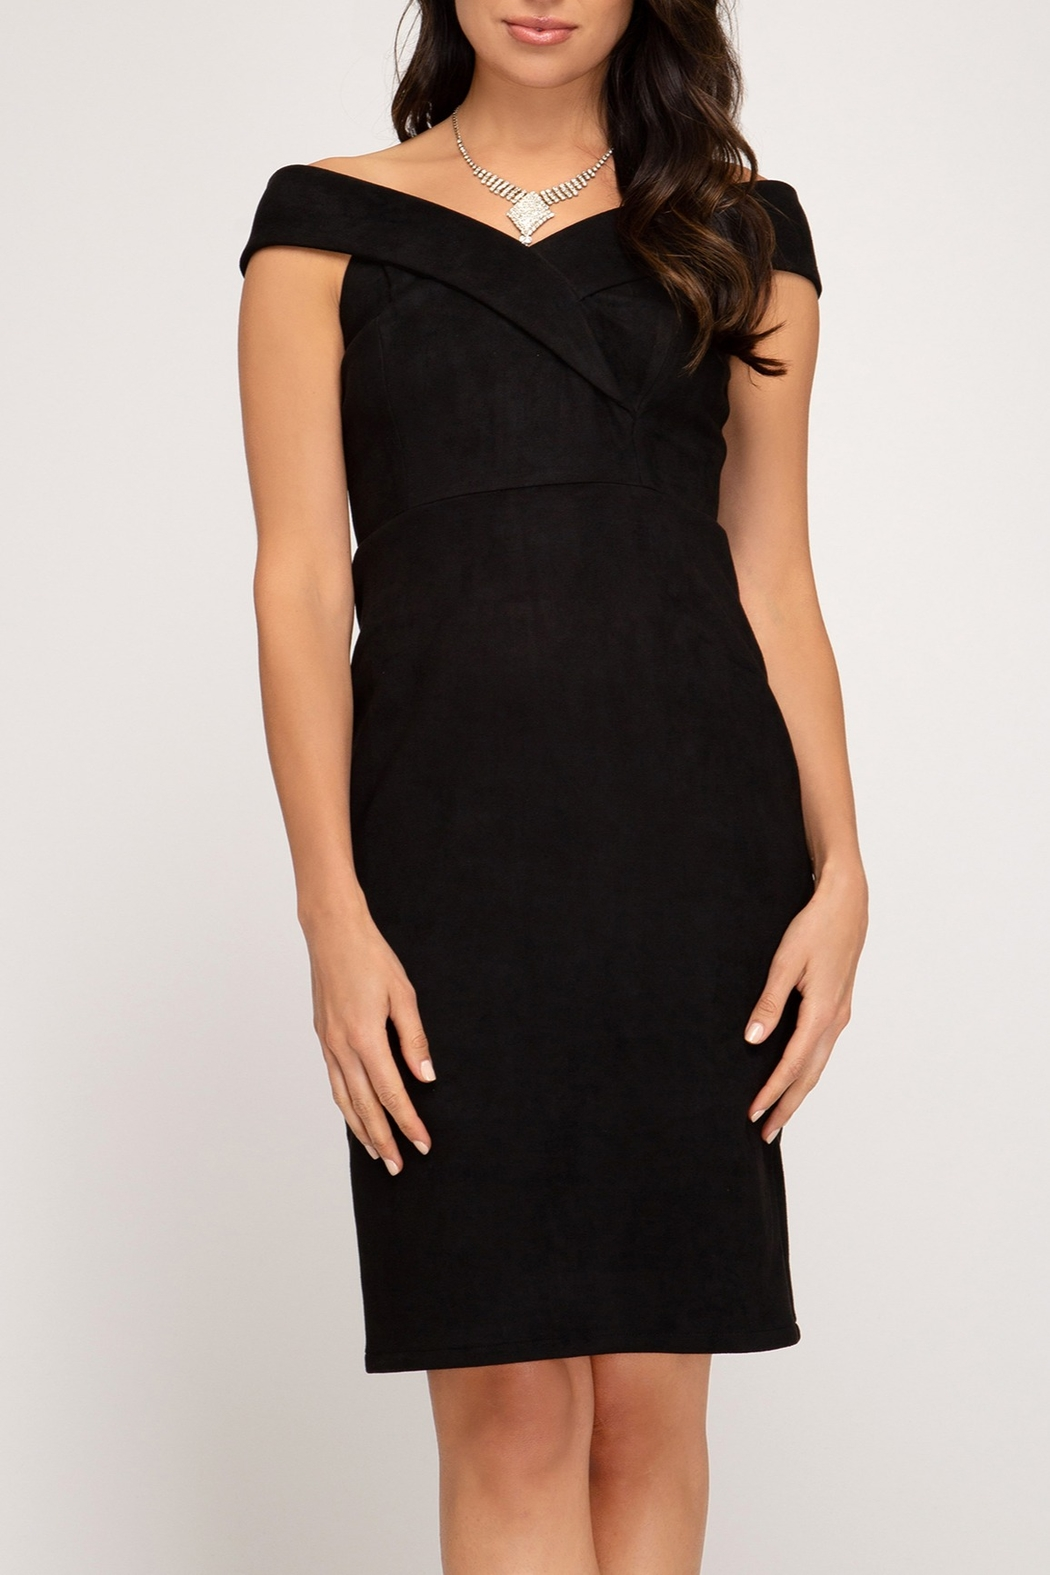 She + Sky OTS Suede Dress - Main Image